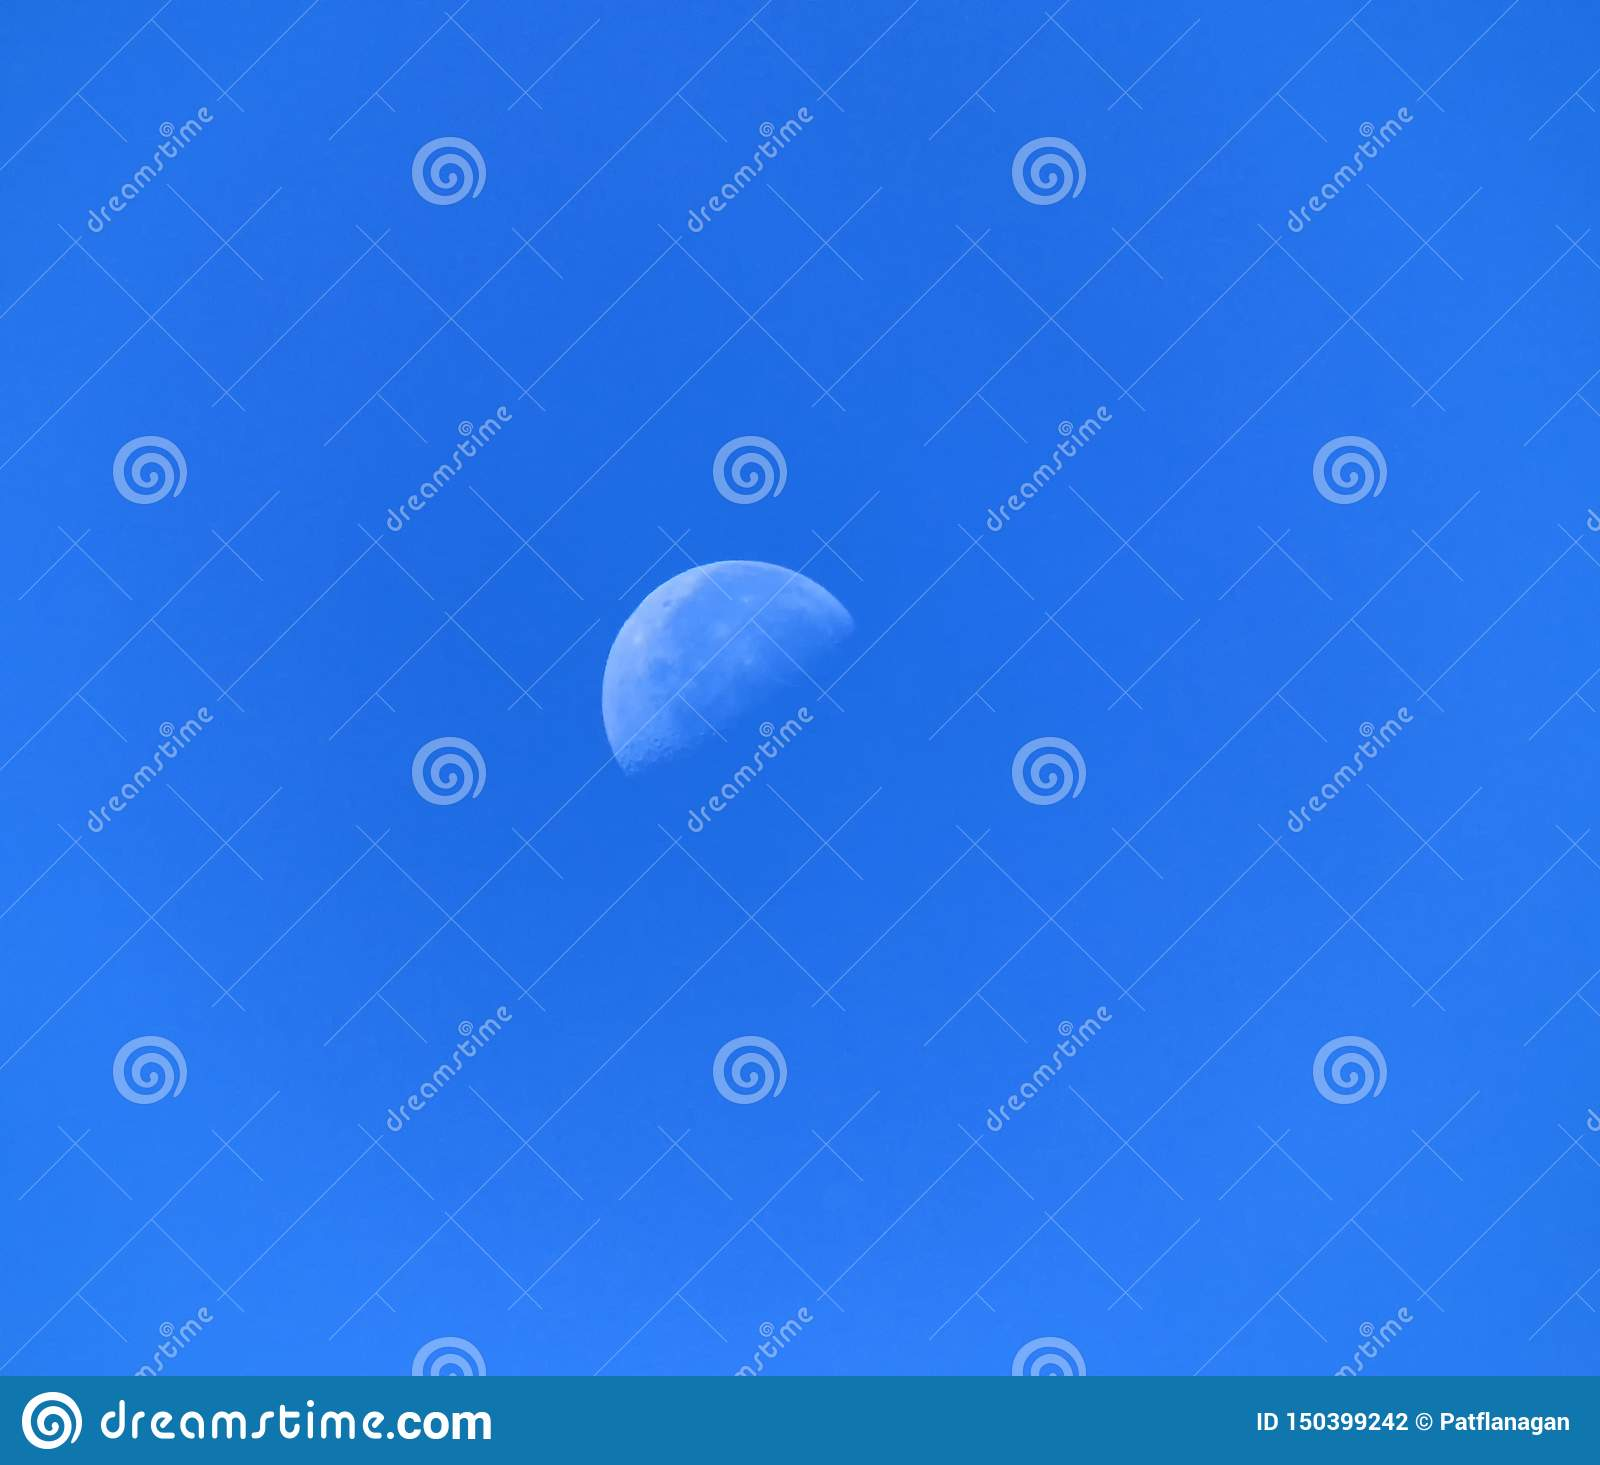 A day moon in a blue sky background